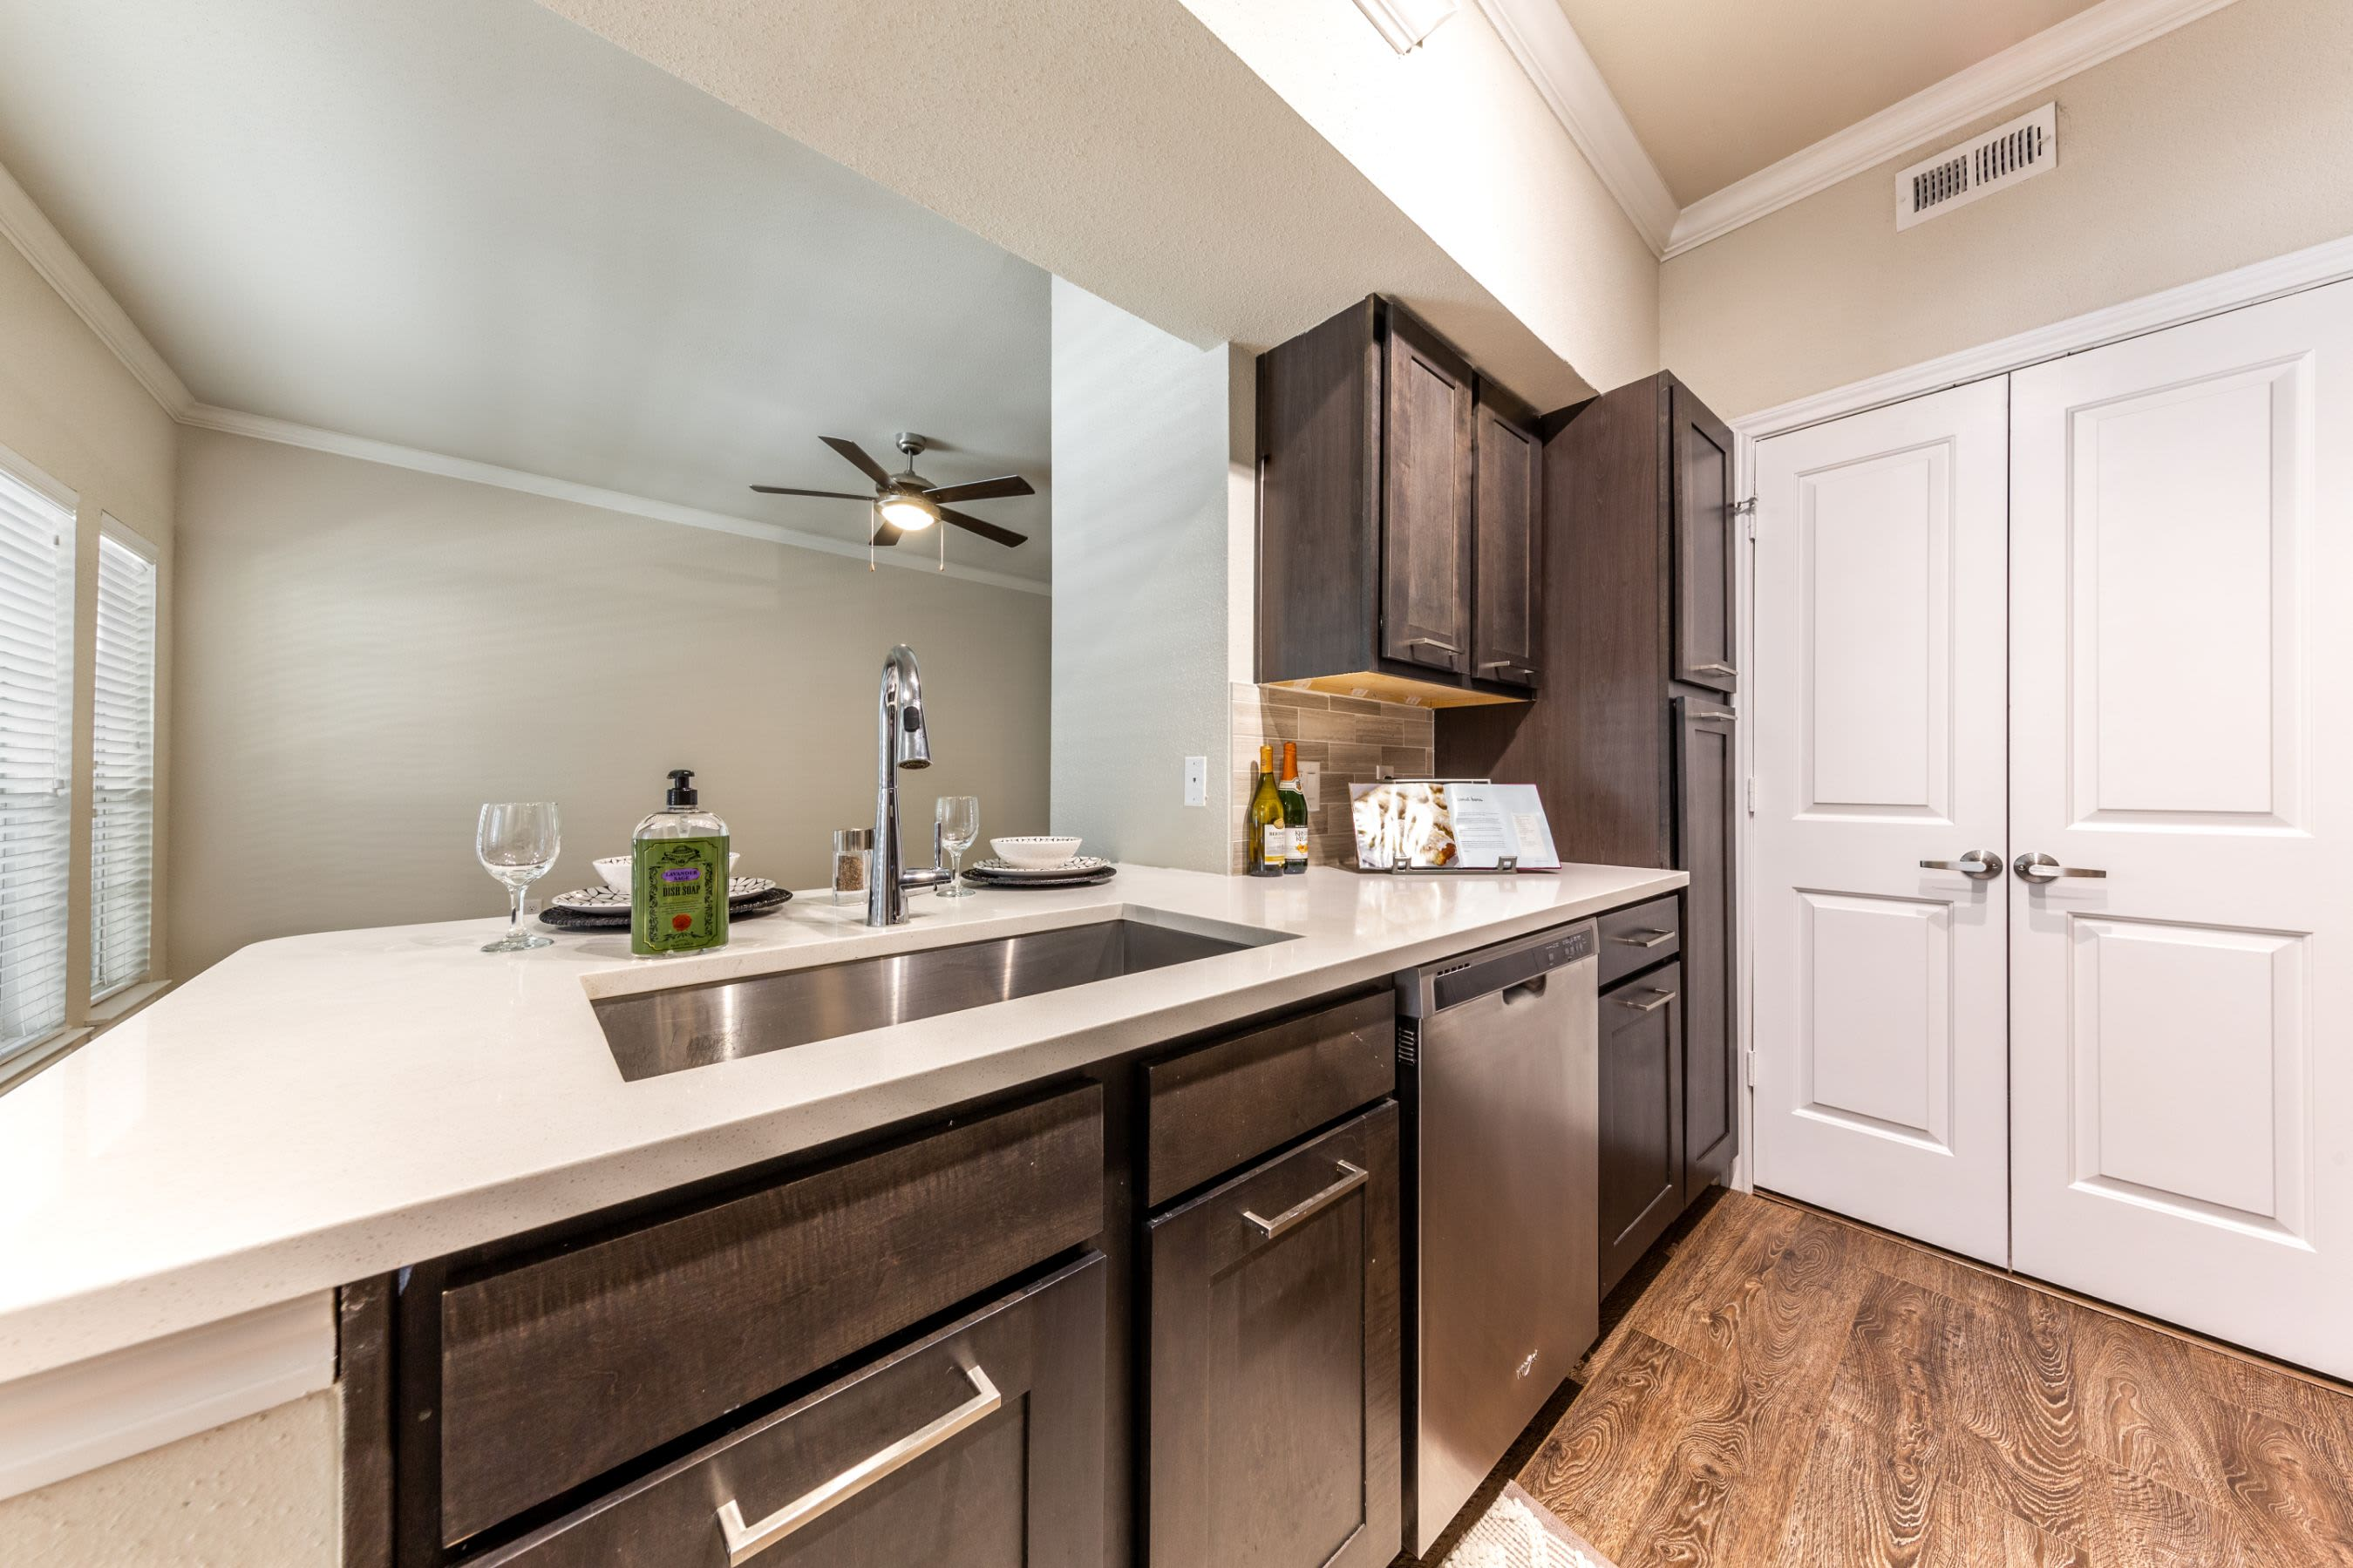 Modern kitchen with white countertops at Marquis on Memorial in Houston, Texas